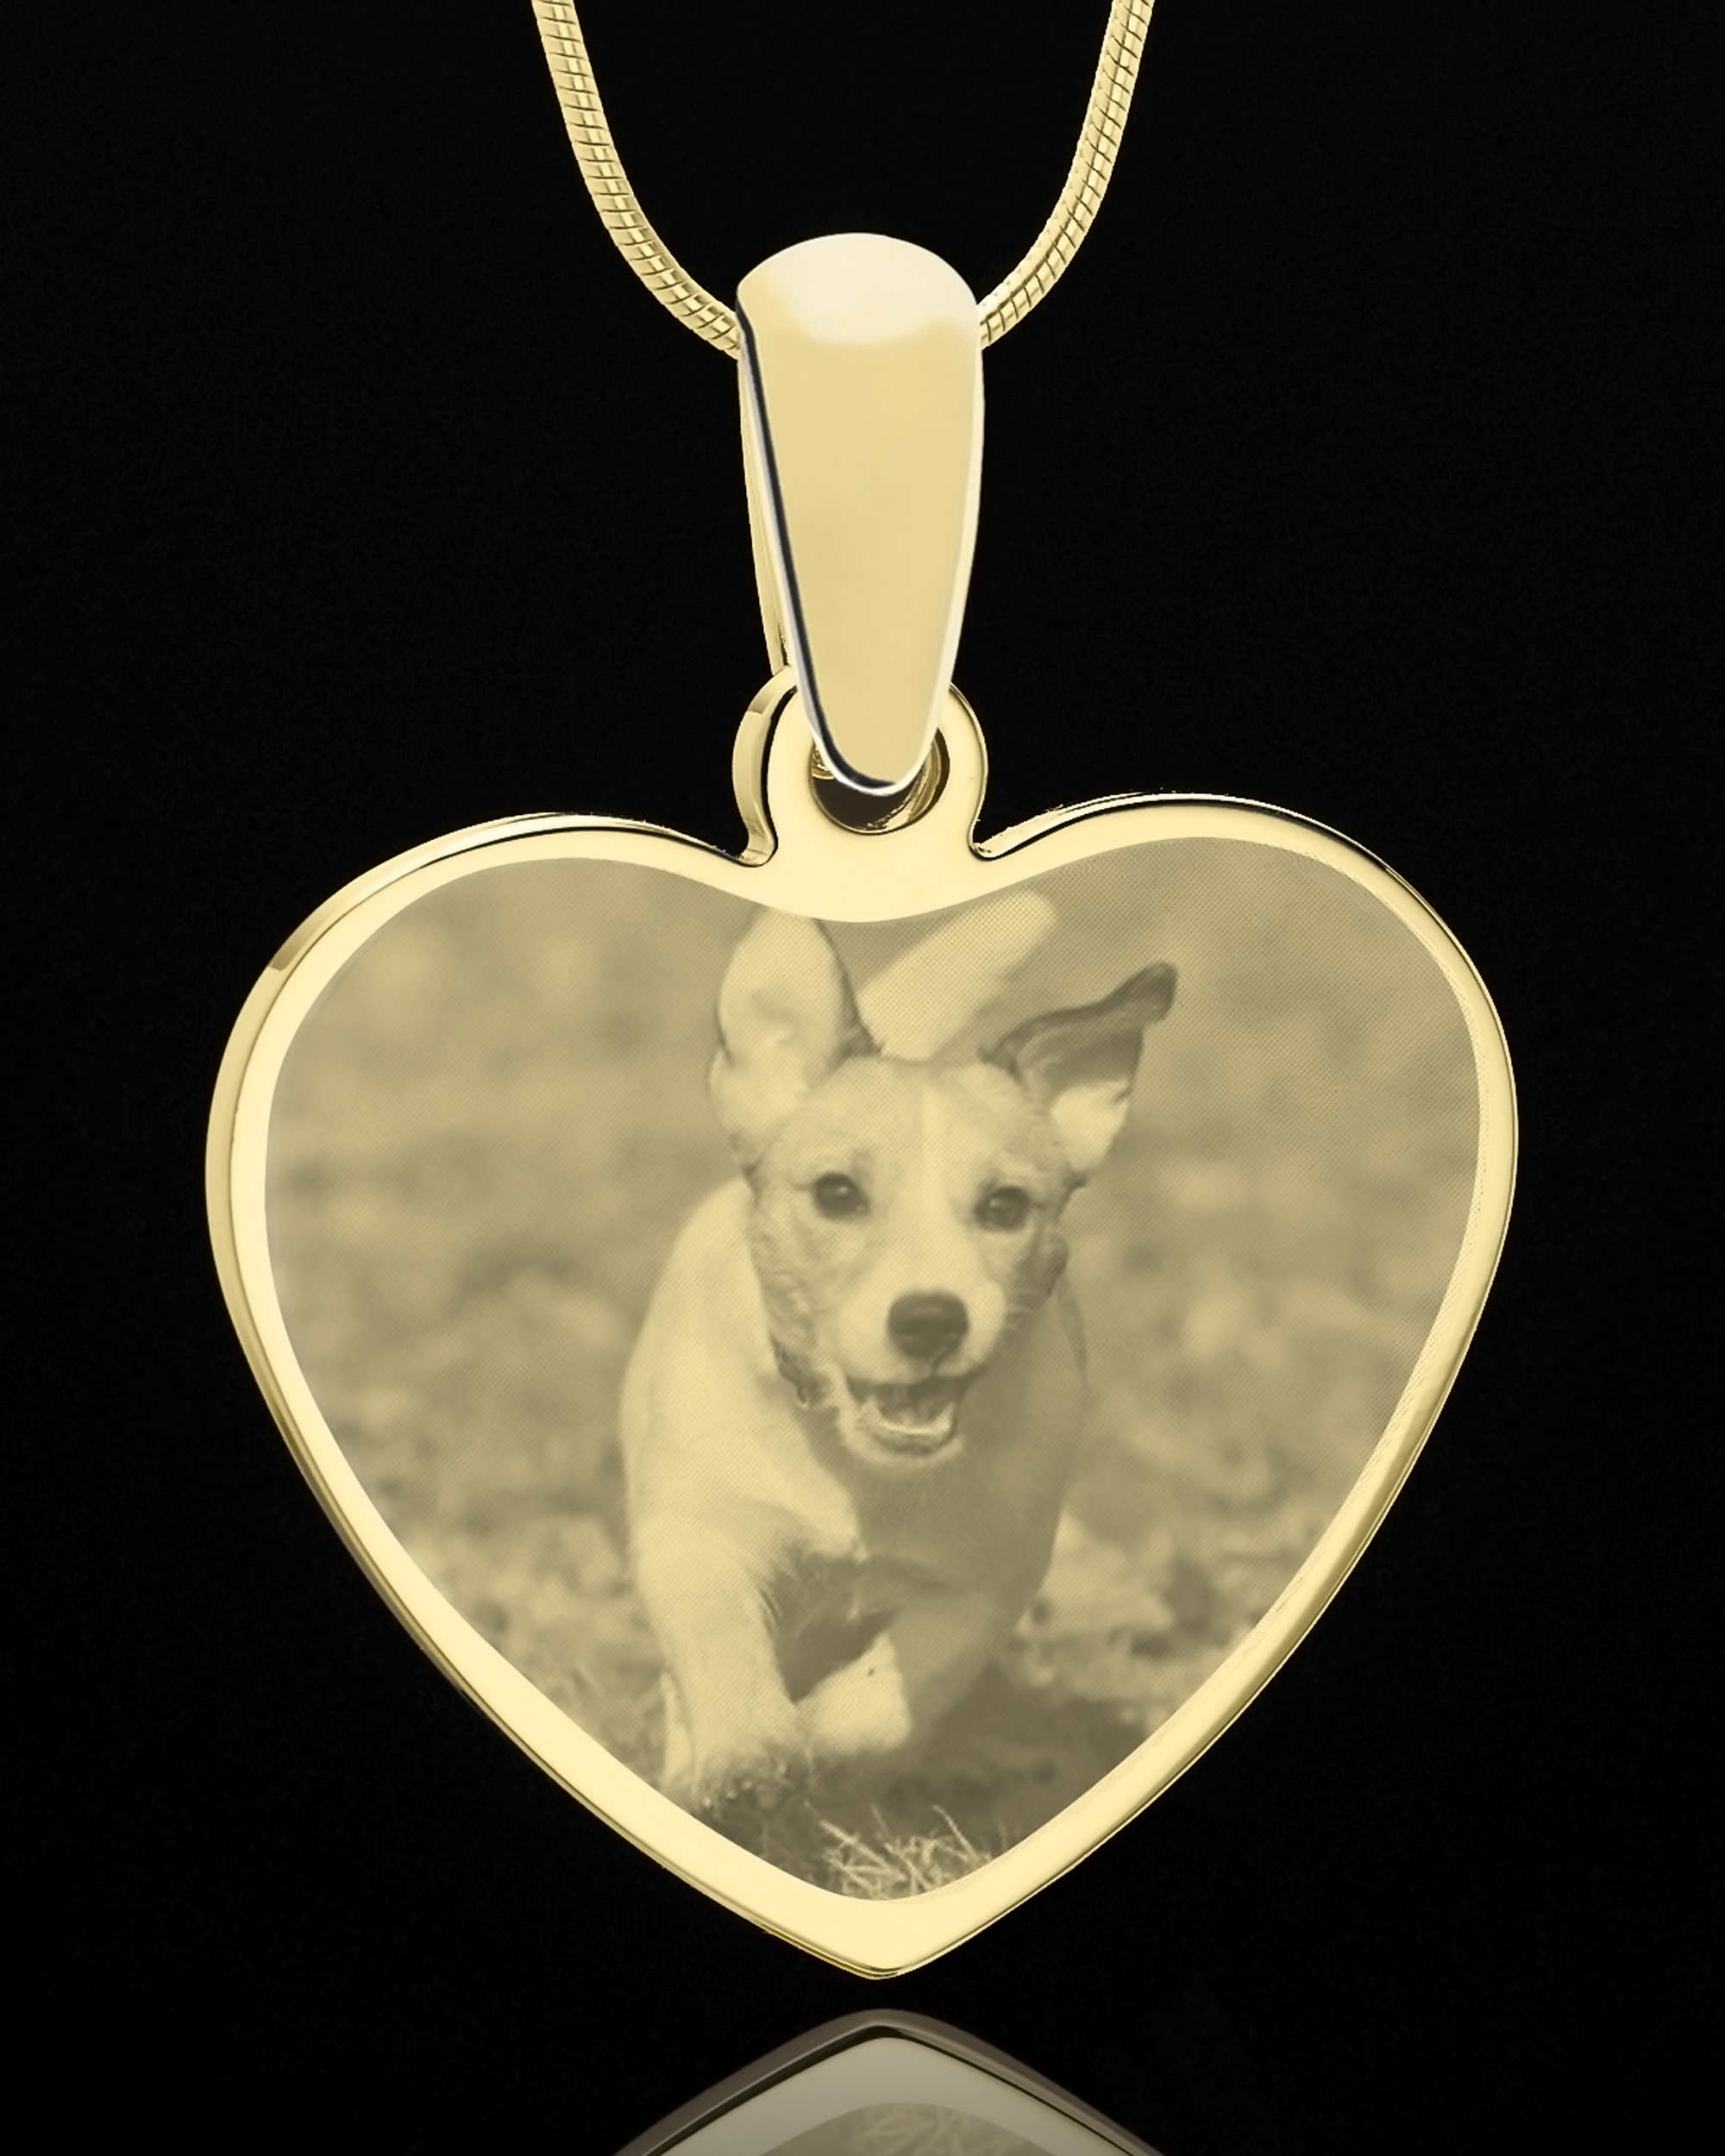 Jewelry Keepsakes81-9732Photo Eng Heart Pet Pendant Gold Plated.jpg811